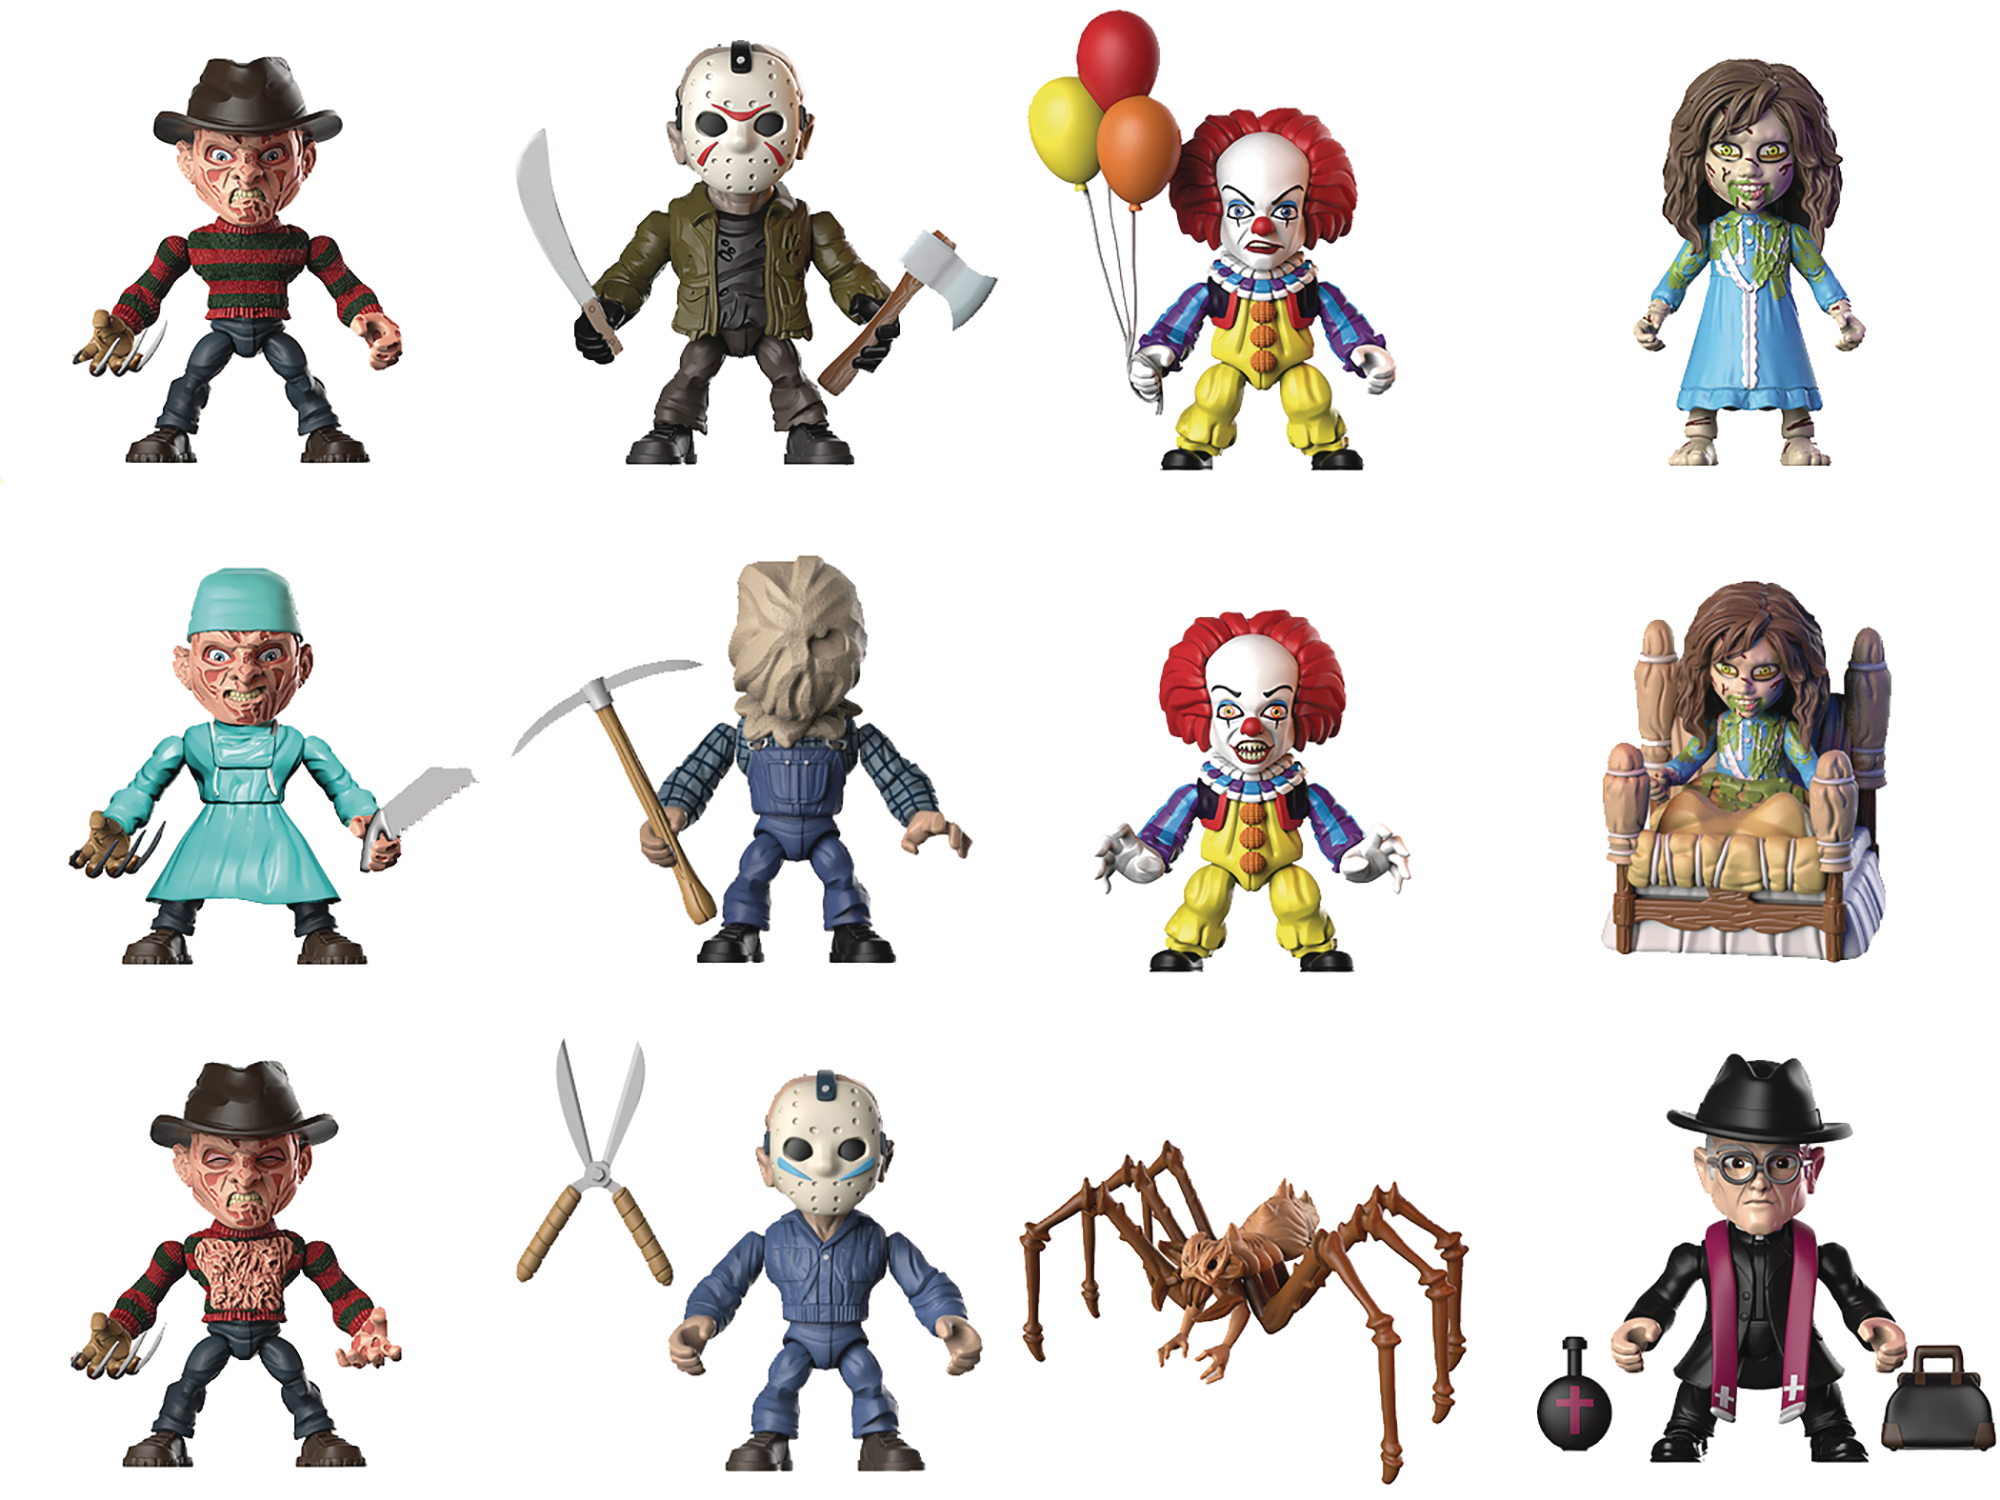 New Horror Aliens And Mega Man Figures By The Loyal